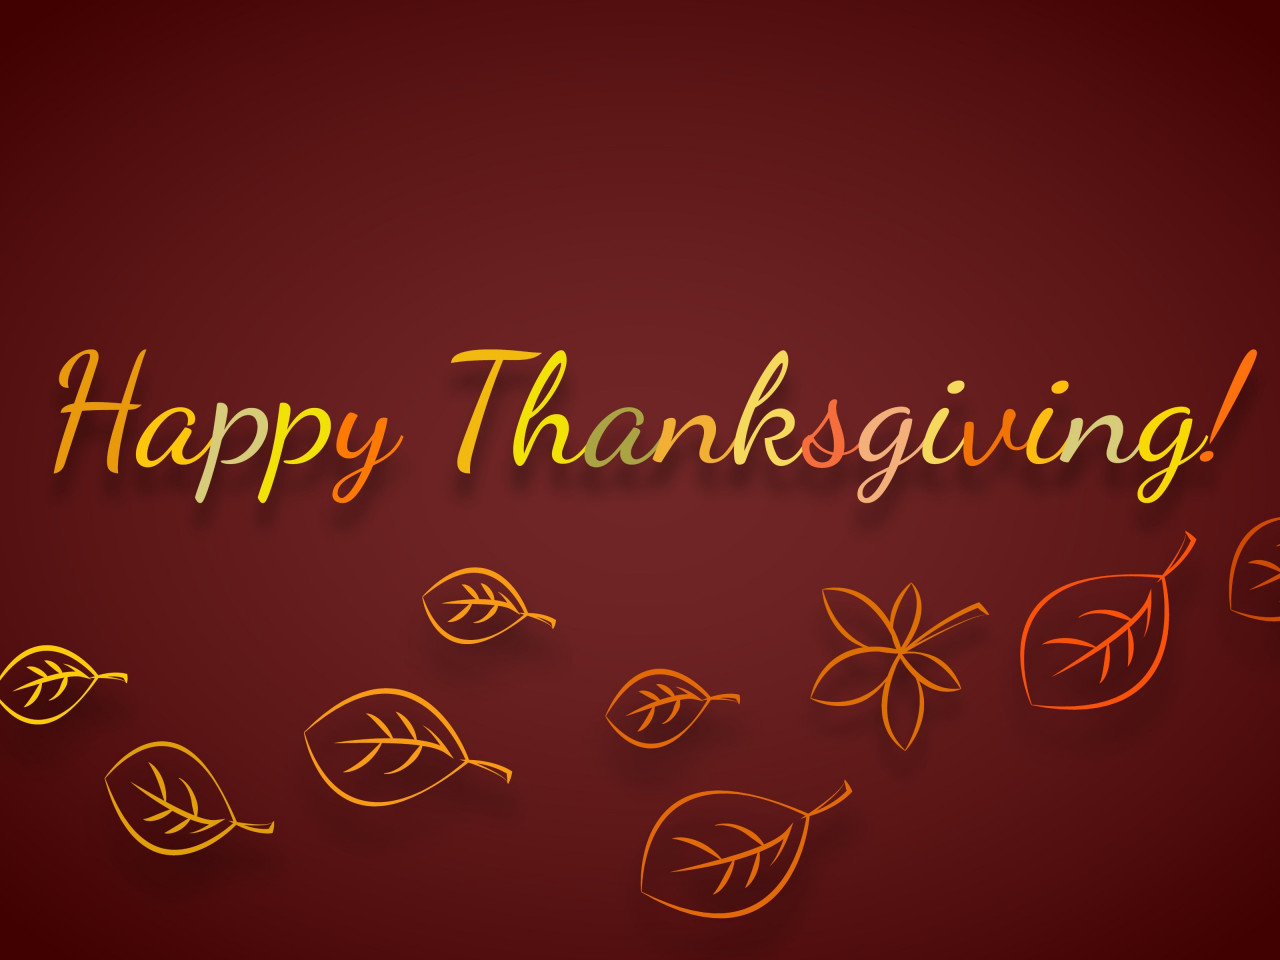 Happy Thanksgiving wallpaper 1280x960